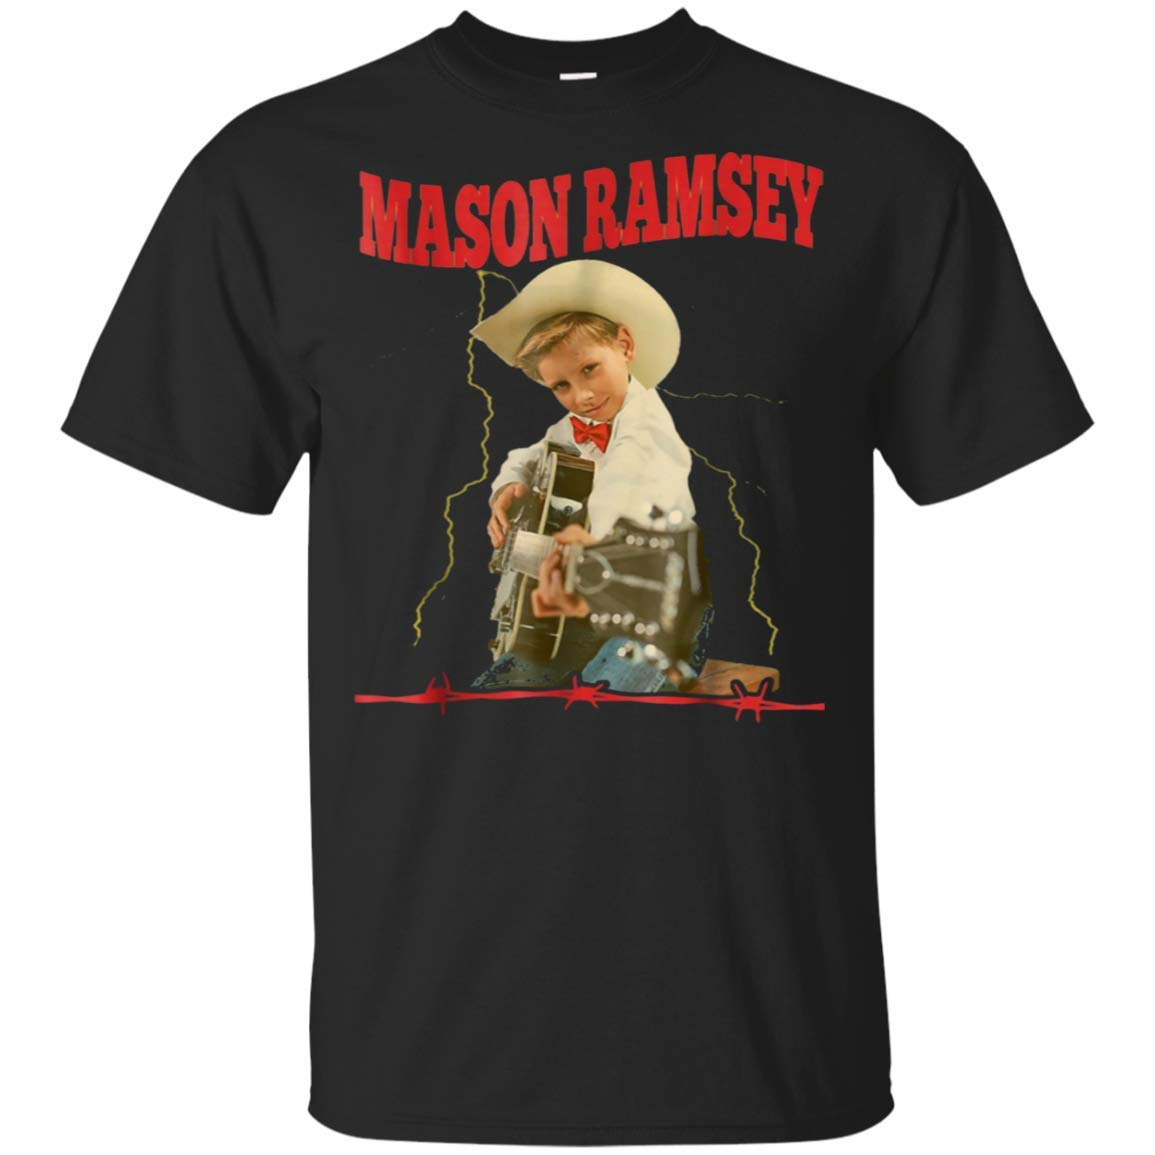 new products 5764c 76dc7 Pew Pew Mason Ramsey - Yodeling Boy Shirt - Guitar Gift ...